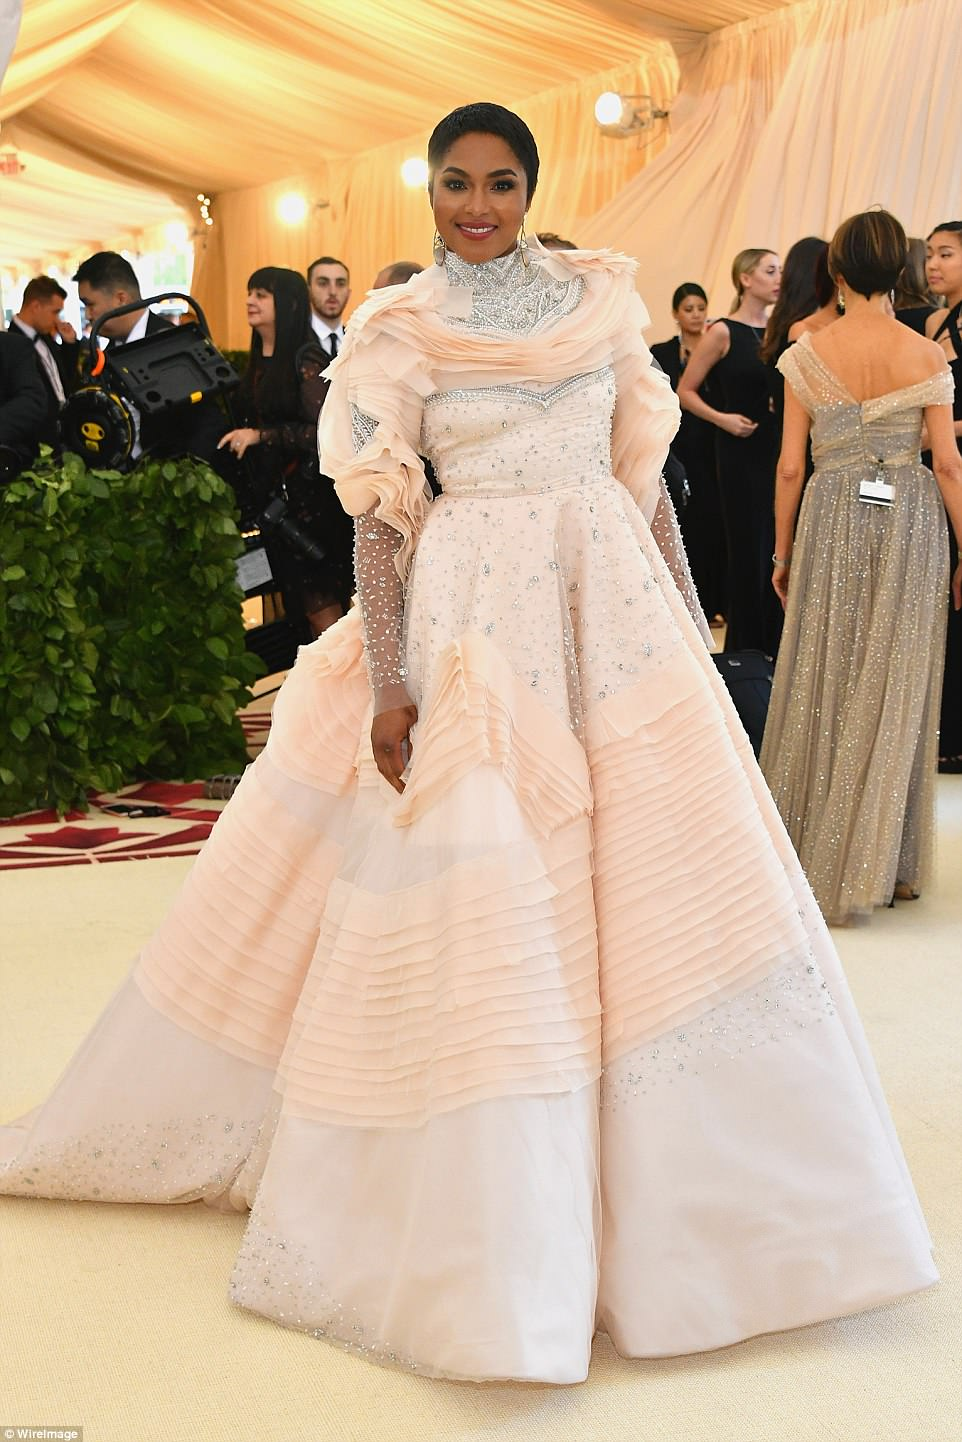 George and Amal at Met Gala 4BF3CC3600000578-5701183-image-a-18_1525728112105